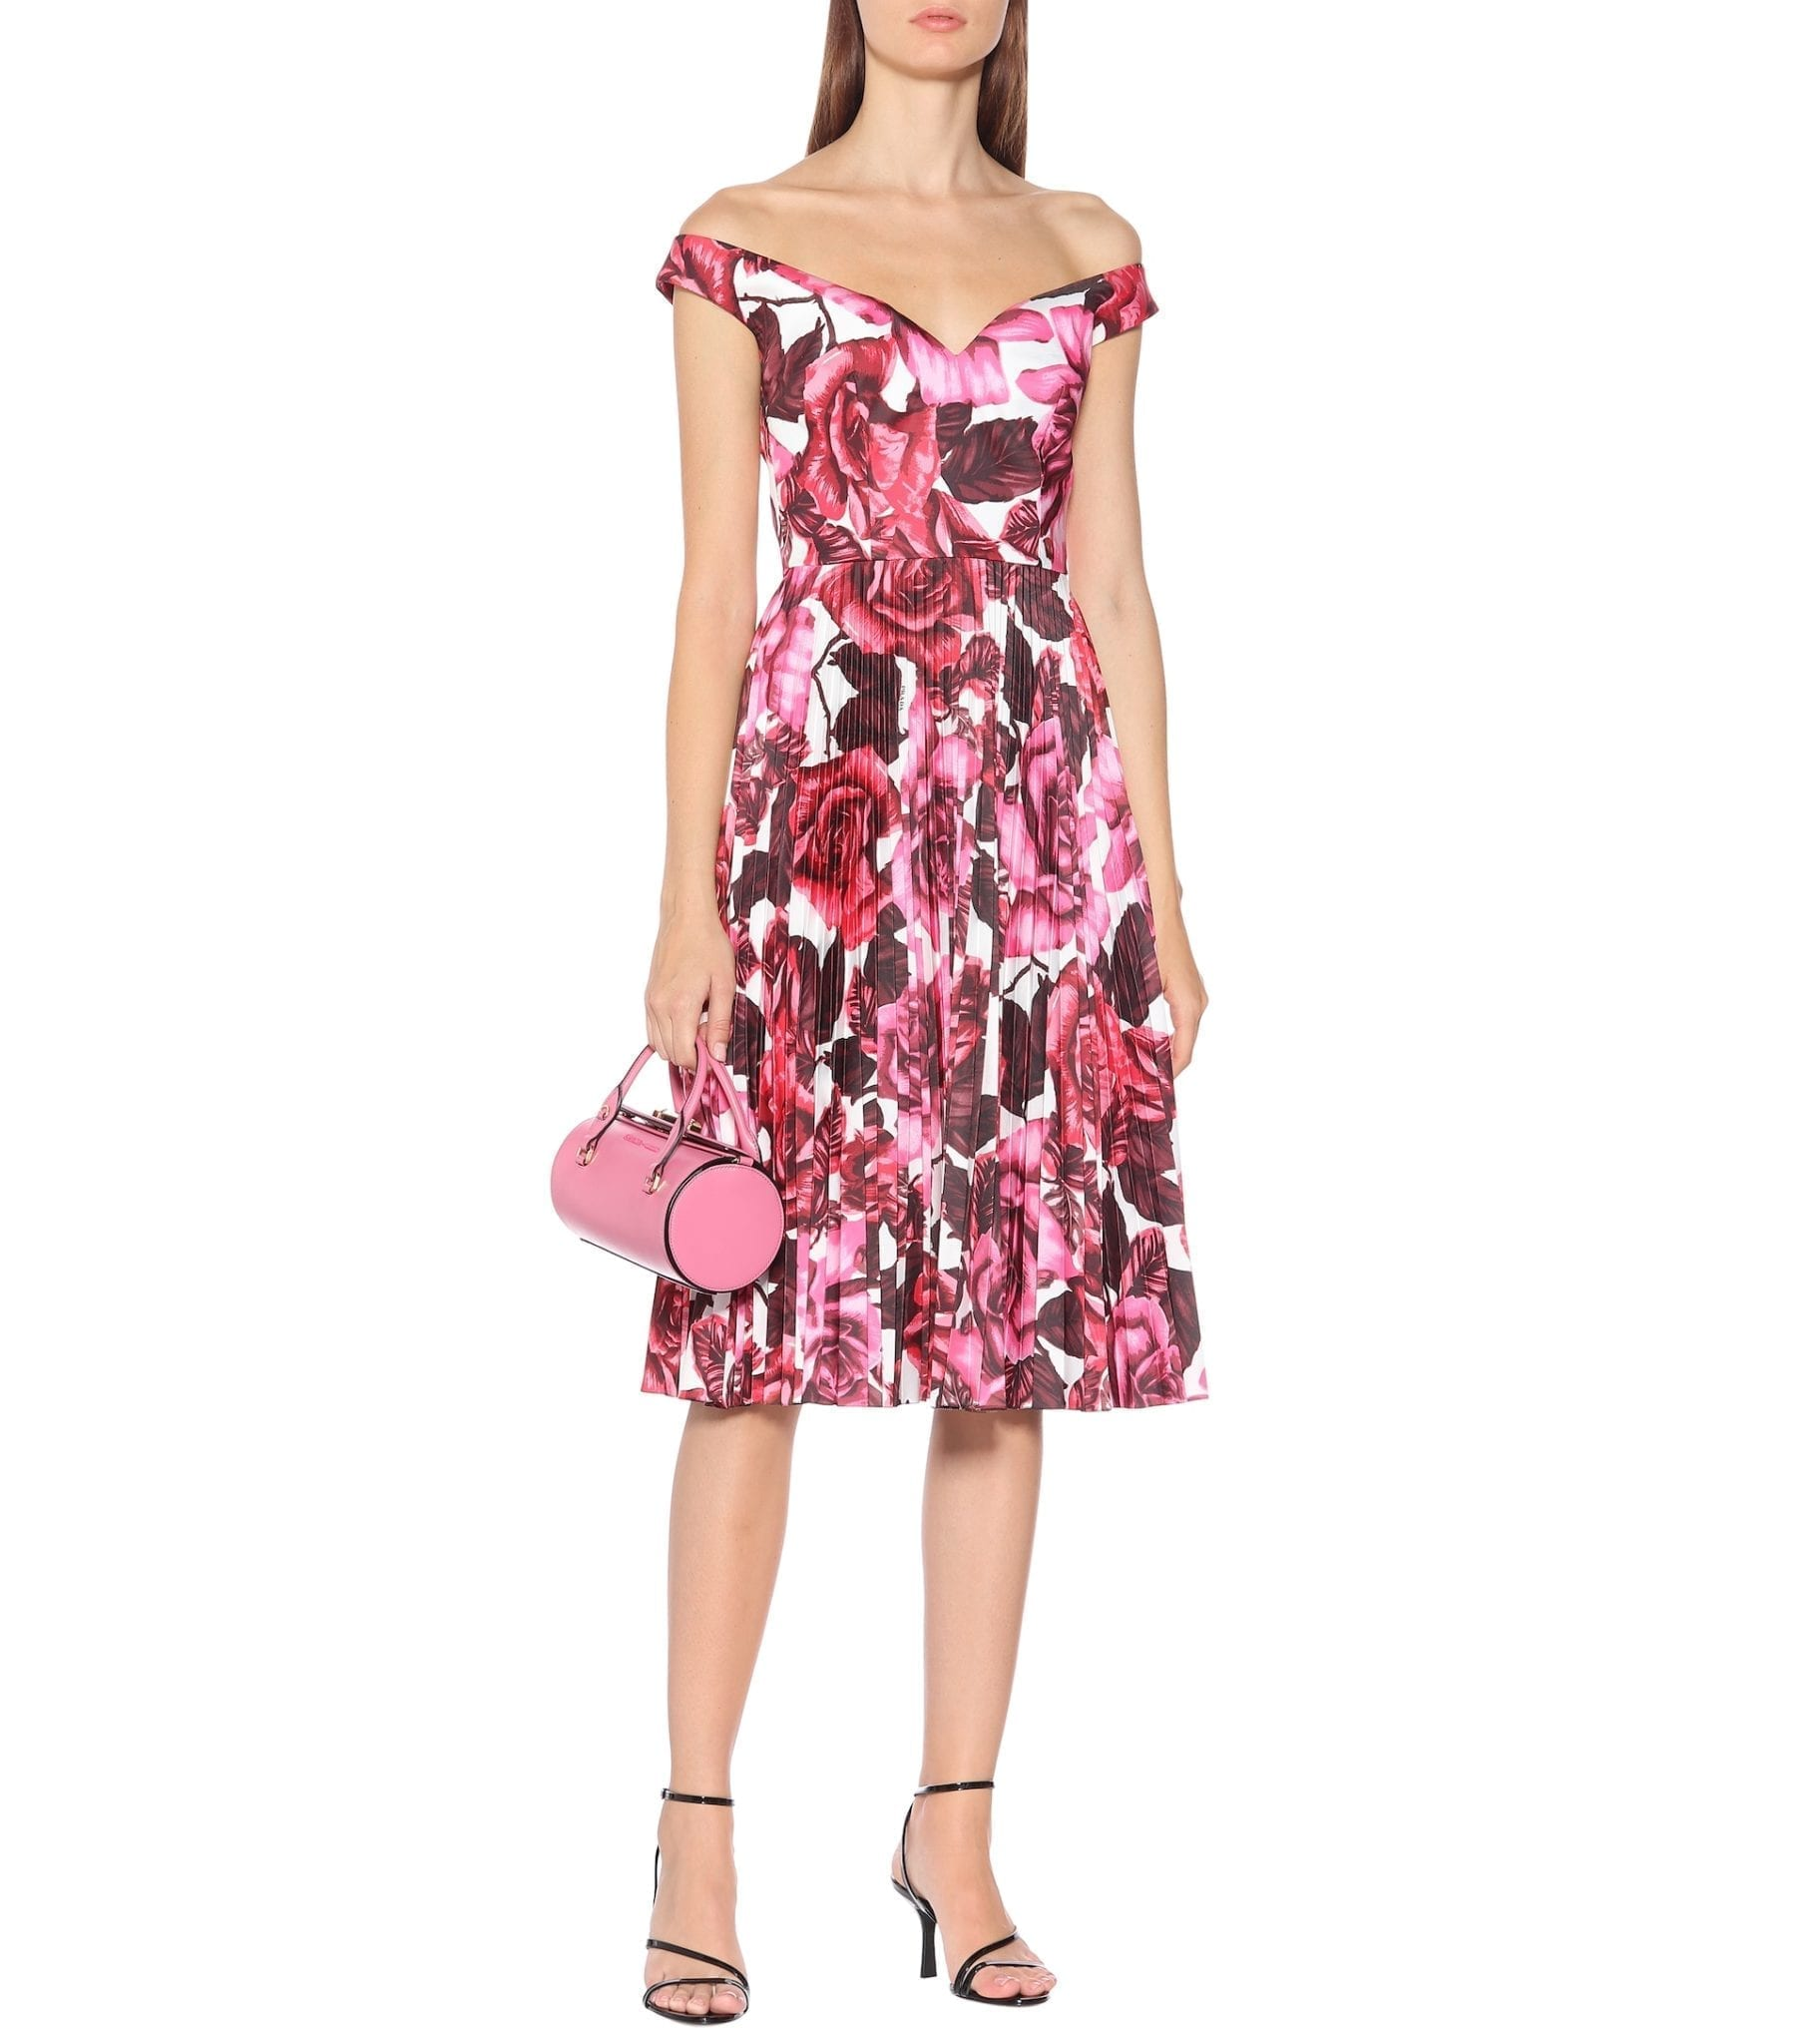 PRADA Floral Cotton Midi Dress